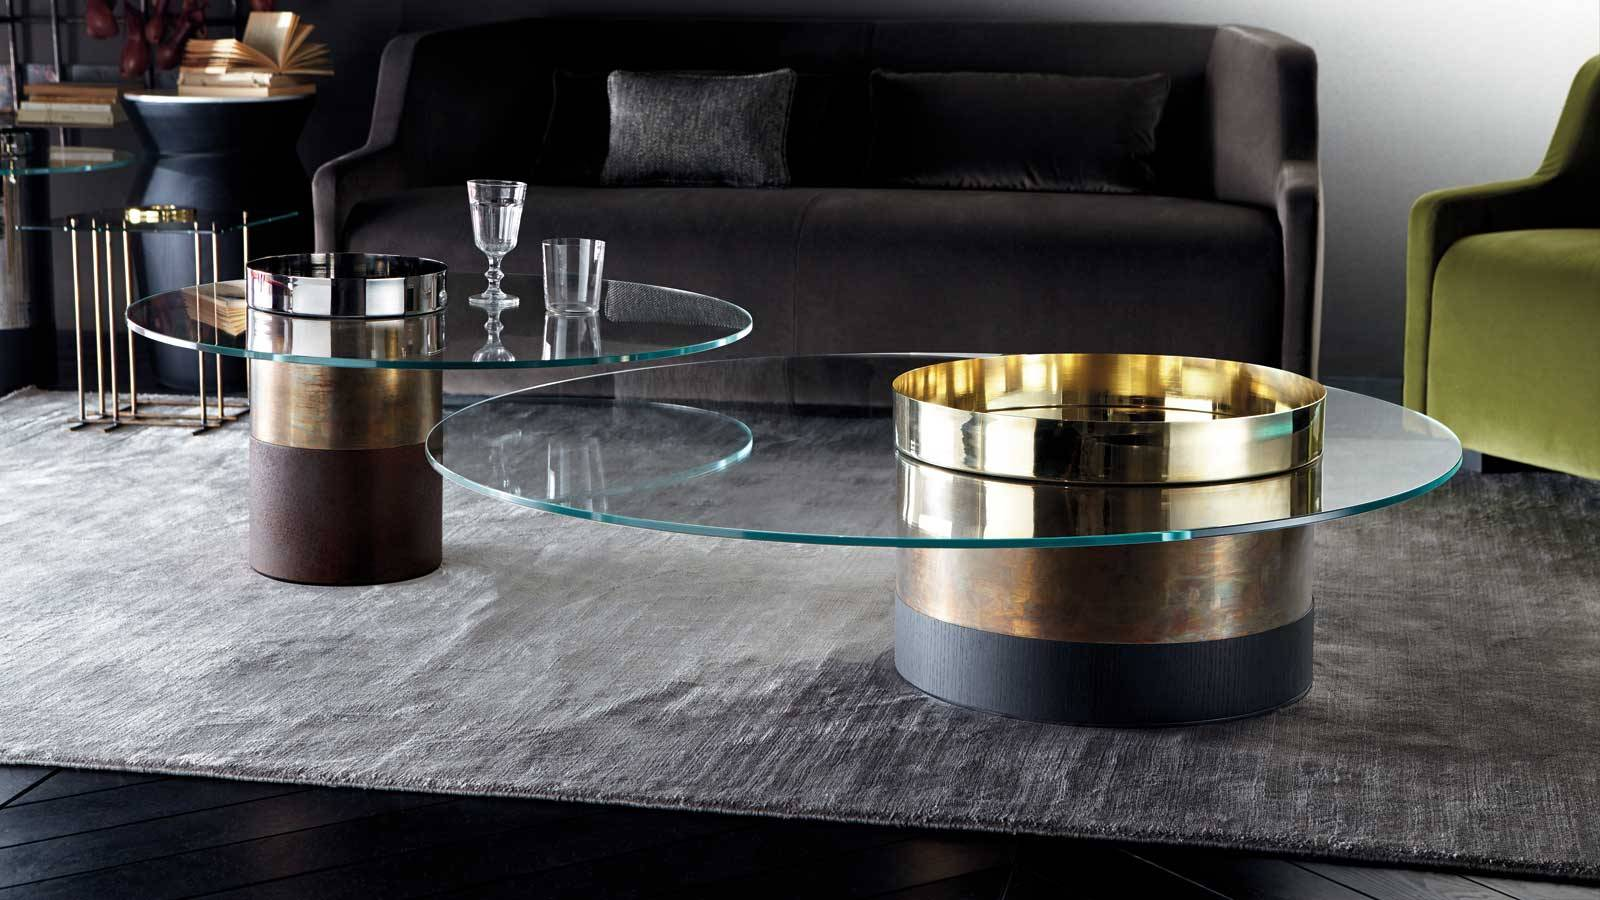 contemporary design furniture by Massimo Castagna for Gallotti&Radice